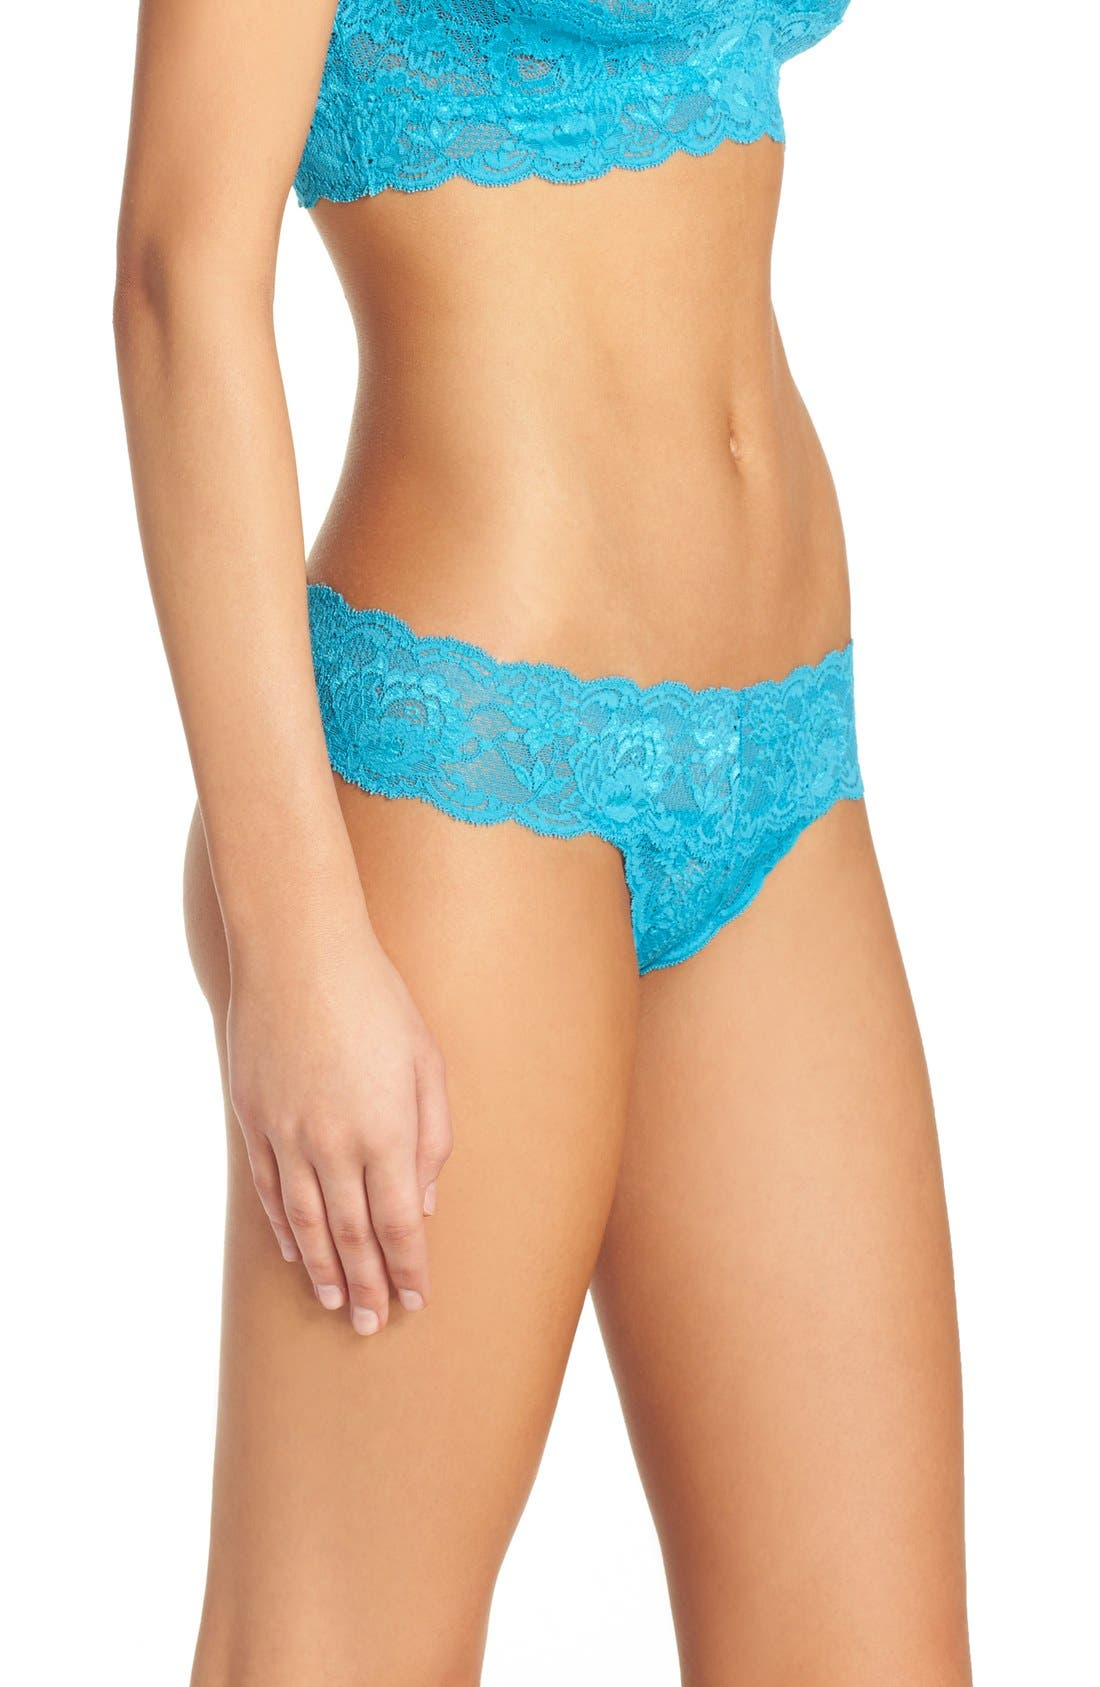 'Never Say Never Cutie' Thong,                             Alternate thumbnail 214, color,